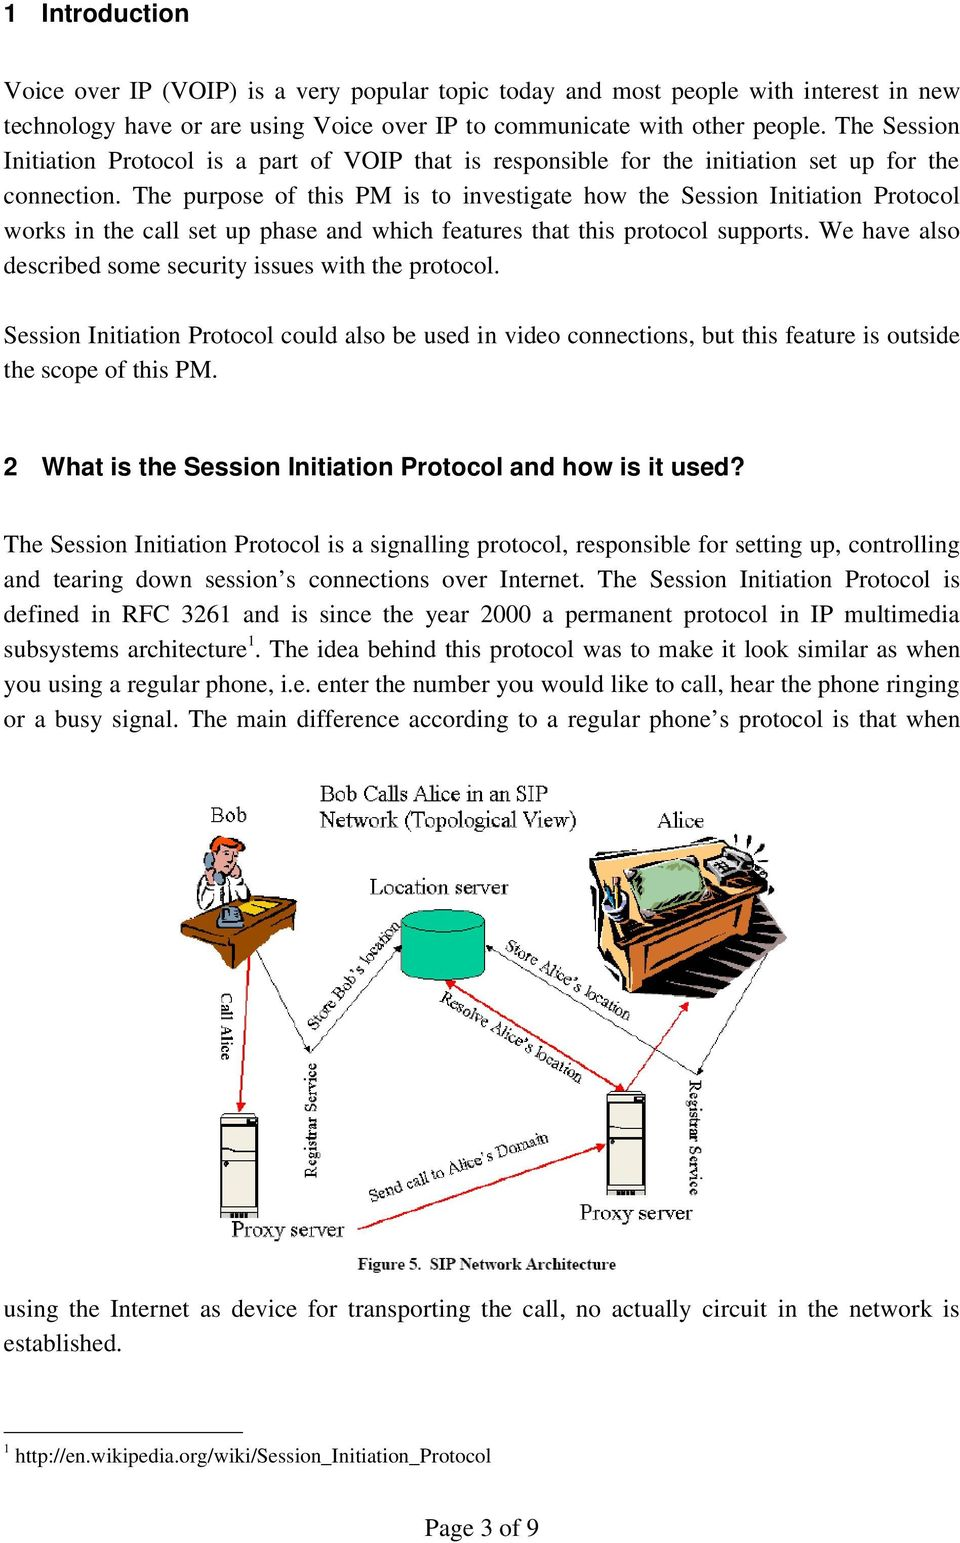 The purpose of this PM is to investigate how the Session Initiation Protocol works in the call set up phase and which features that this protocol supports.